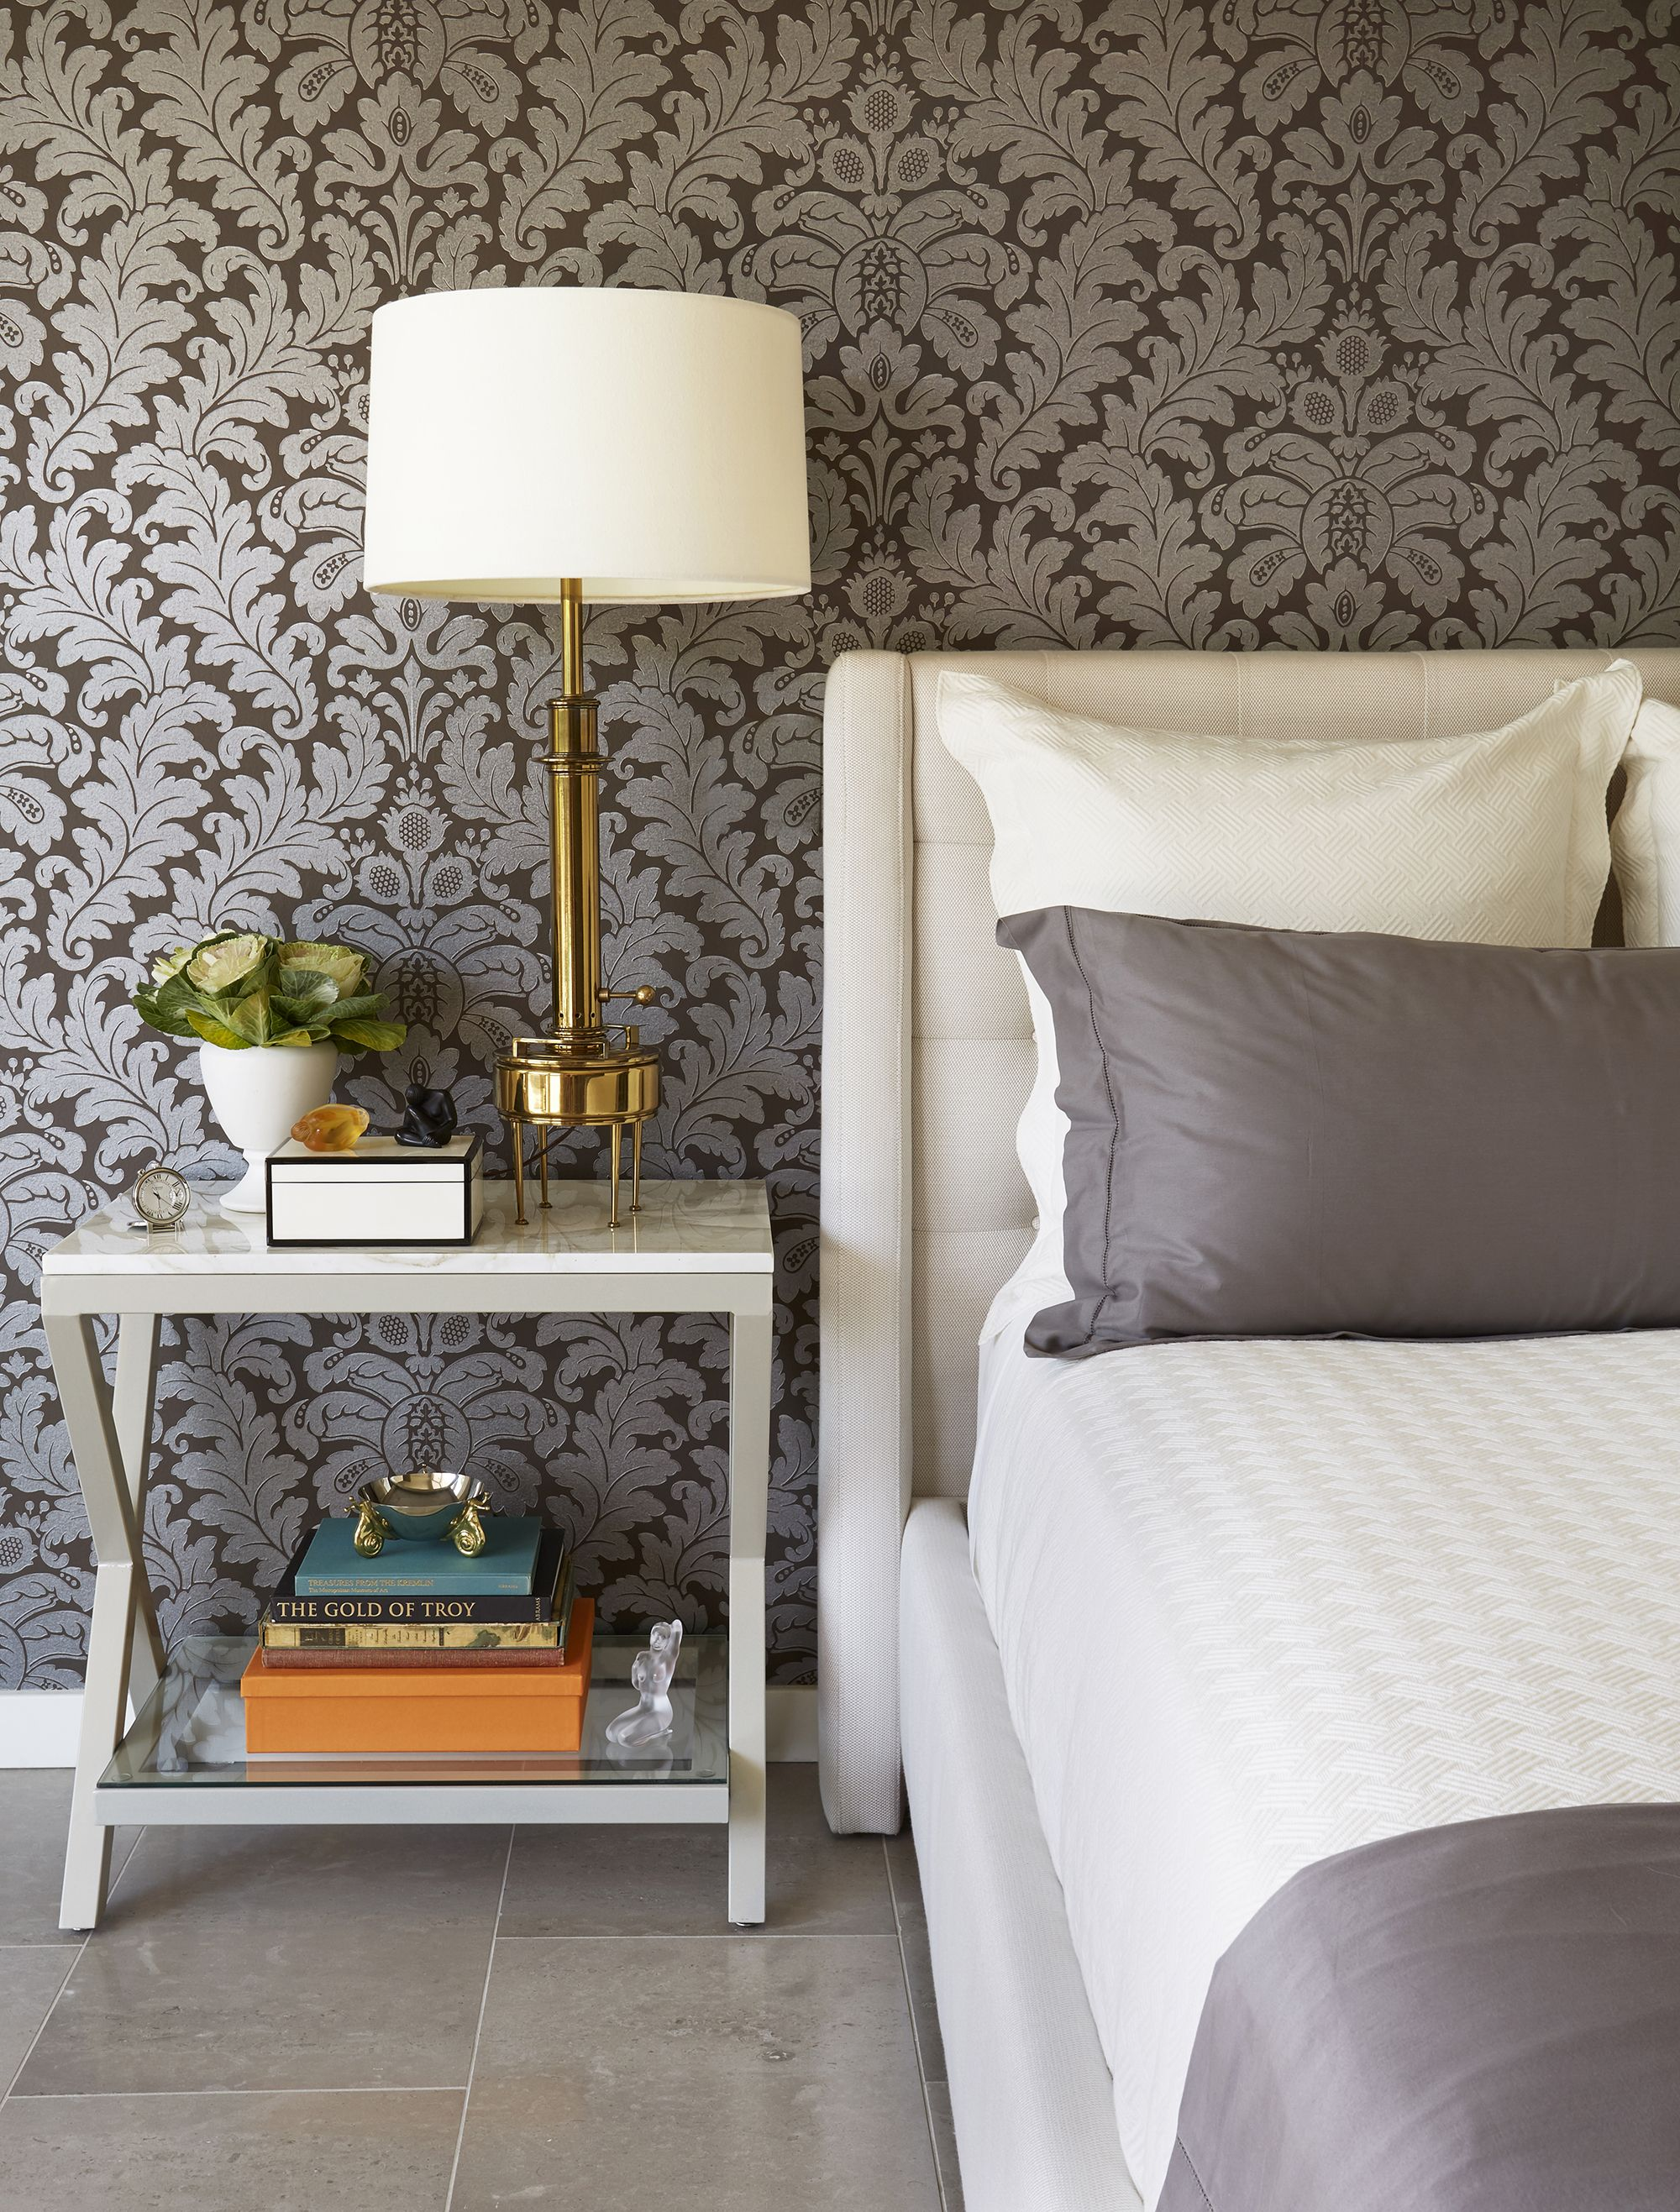 12 Bedroom Wallpaper Ideas - Statement Wallpapers We Love